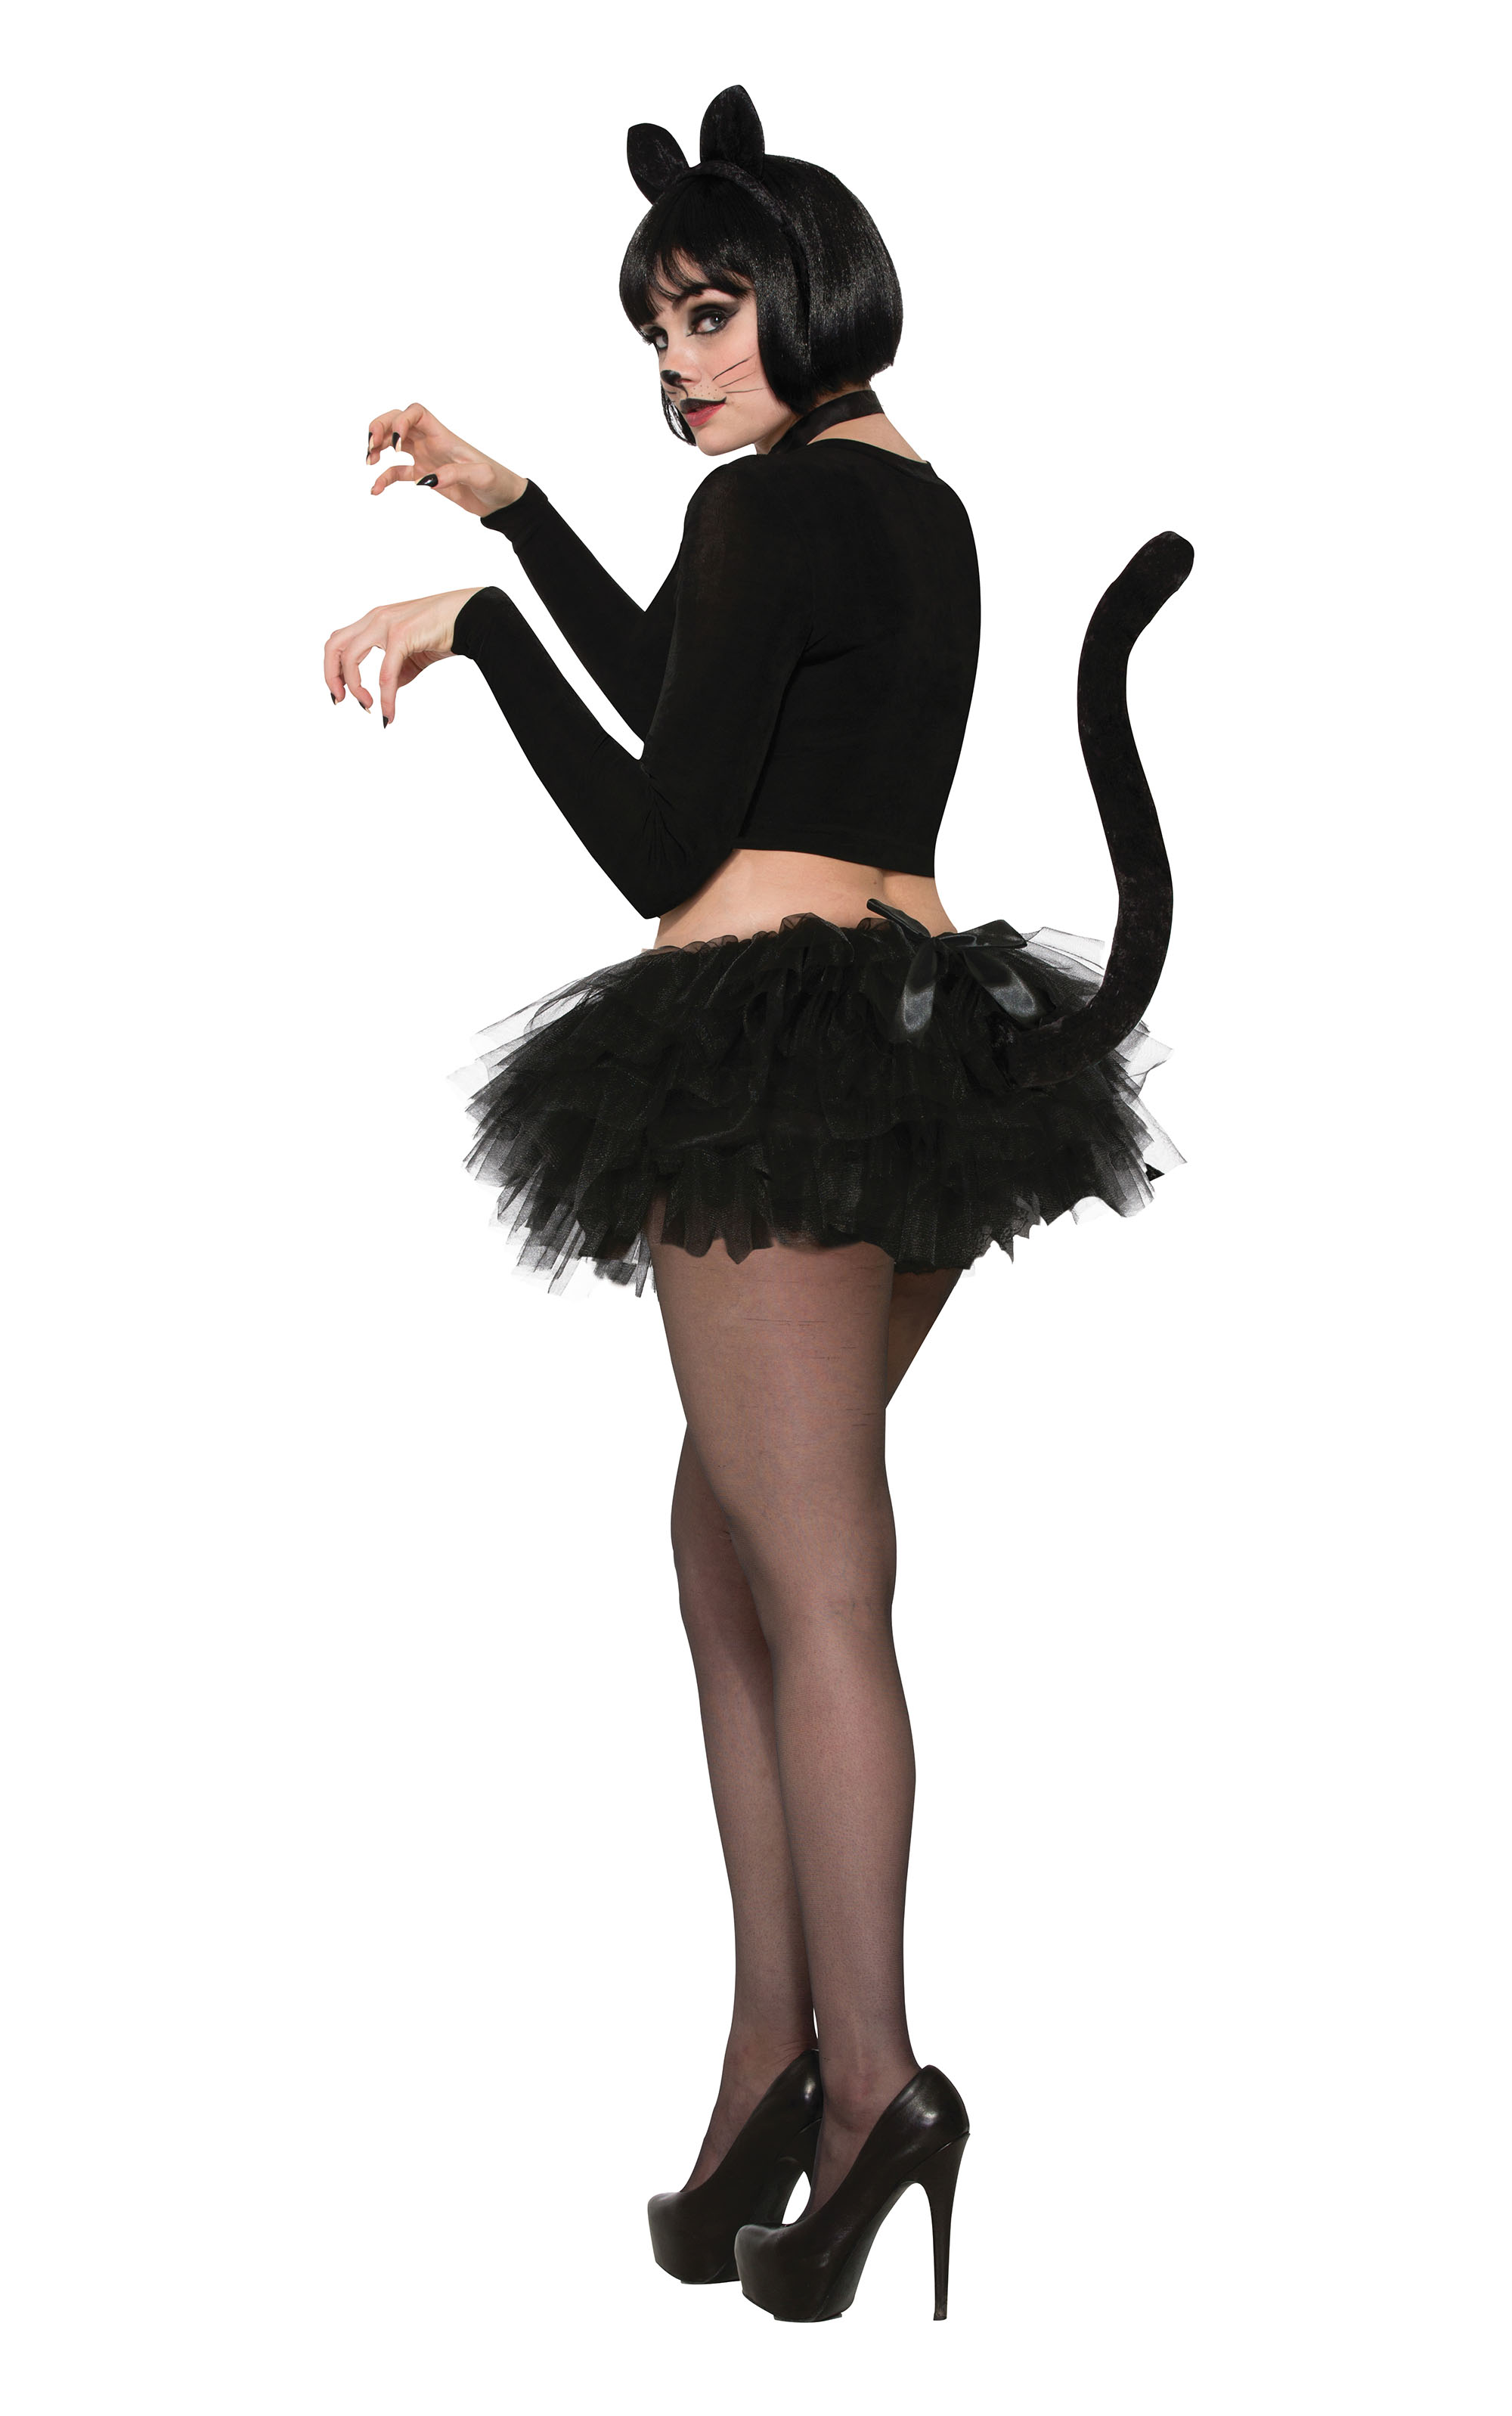 Cat Tutu Black w/Tail Halloween Fancy Dress Costume Outfit Womens Adult UK 10-12